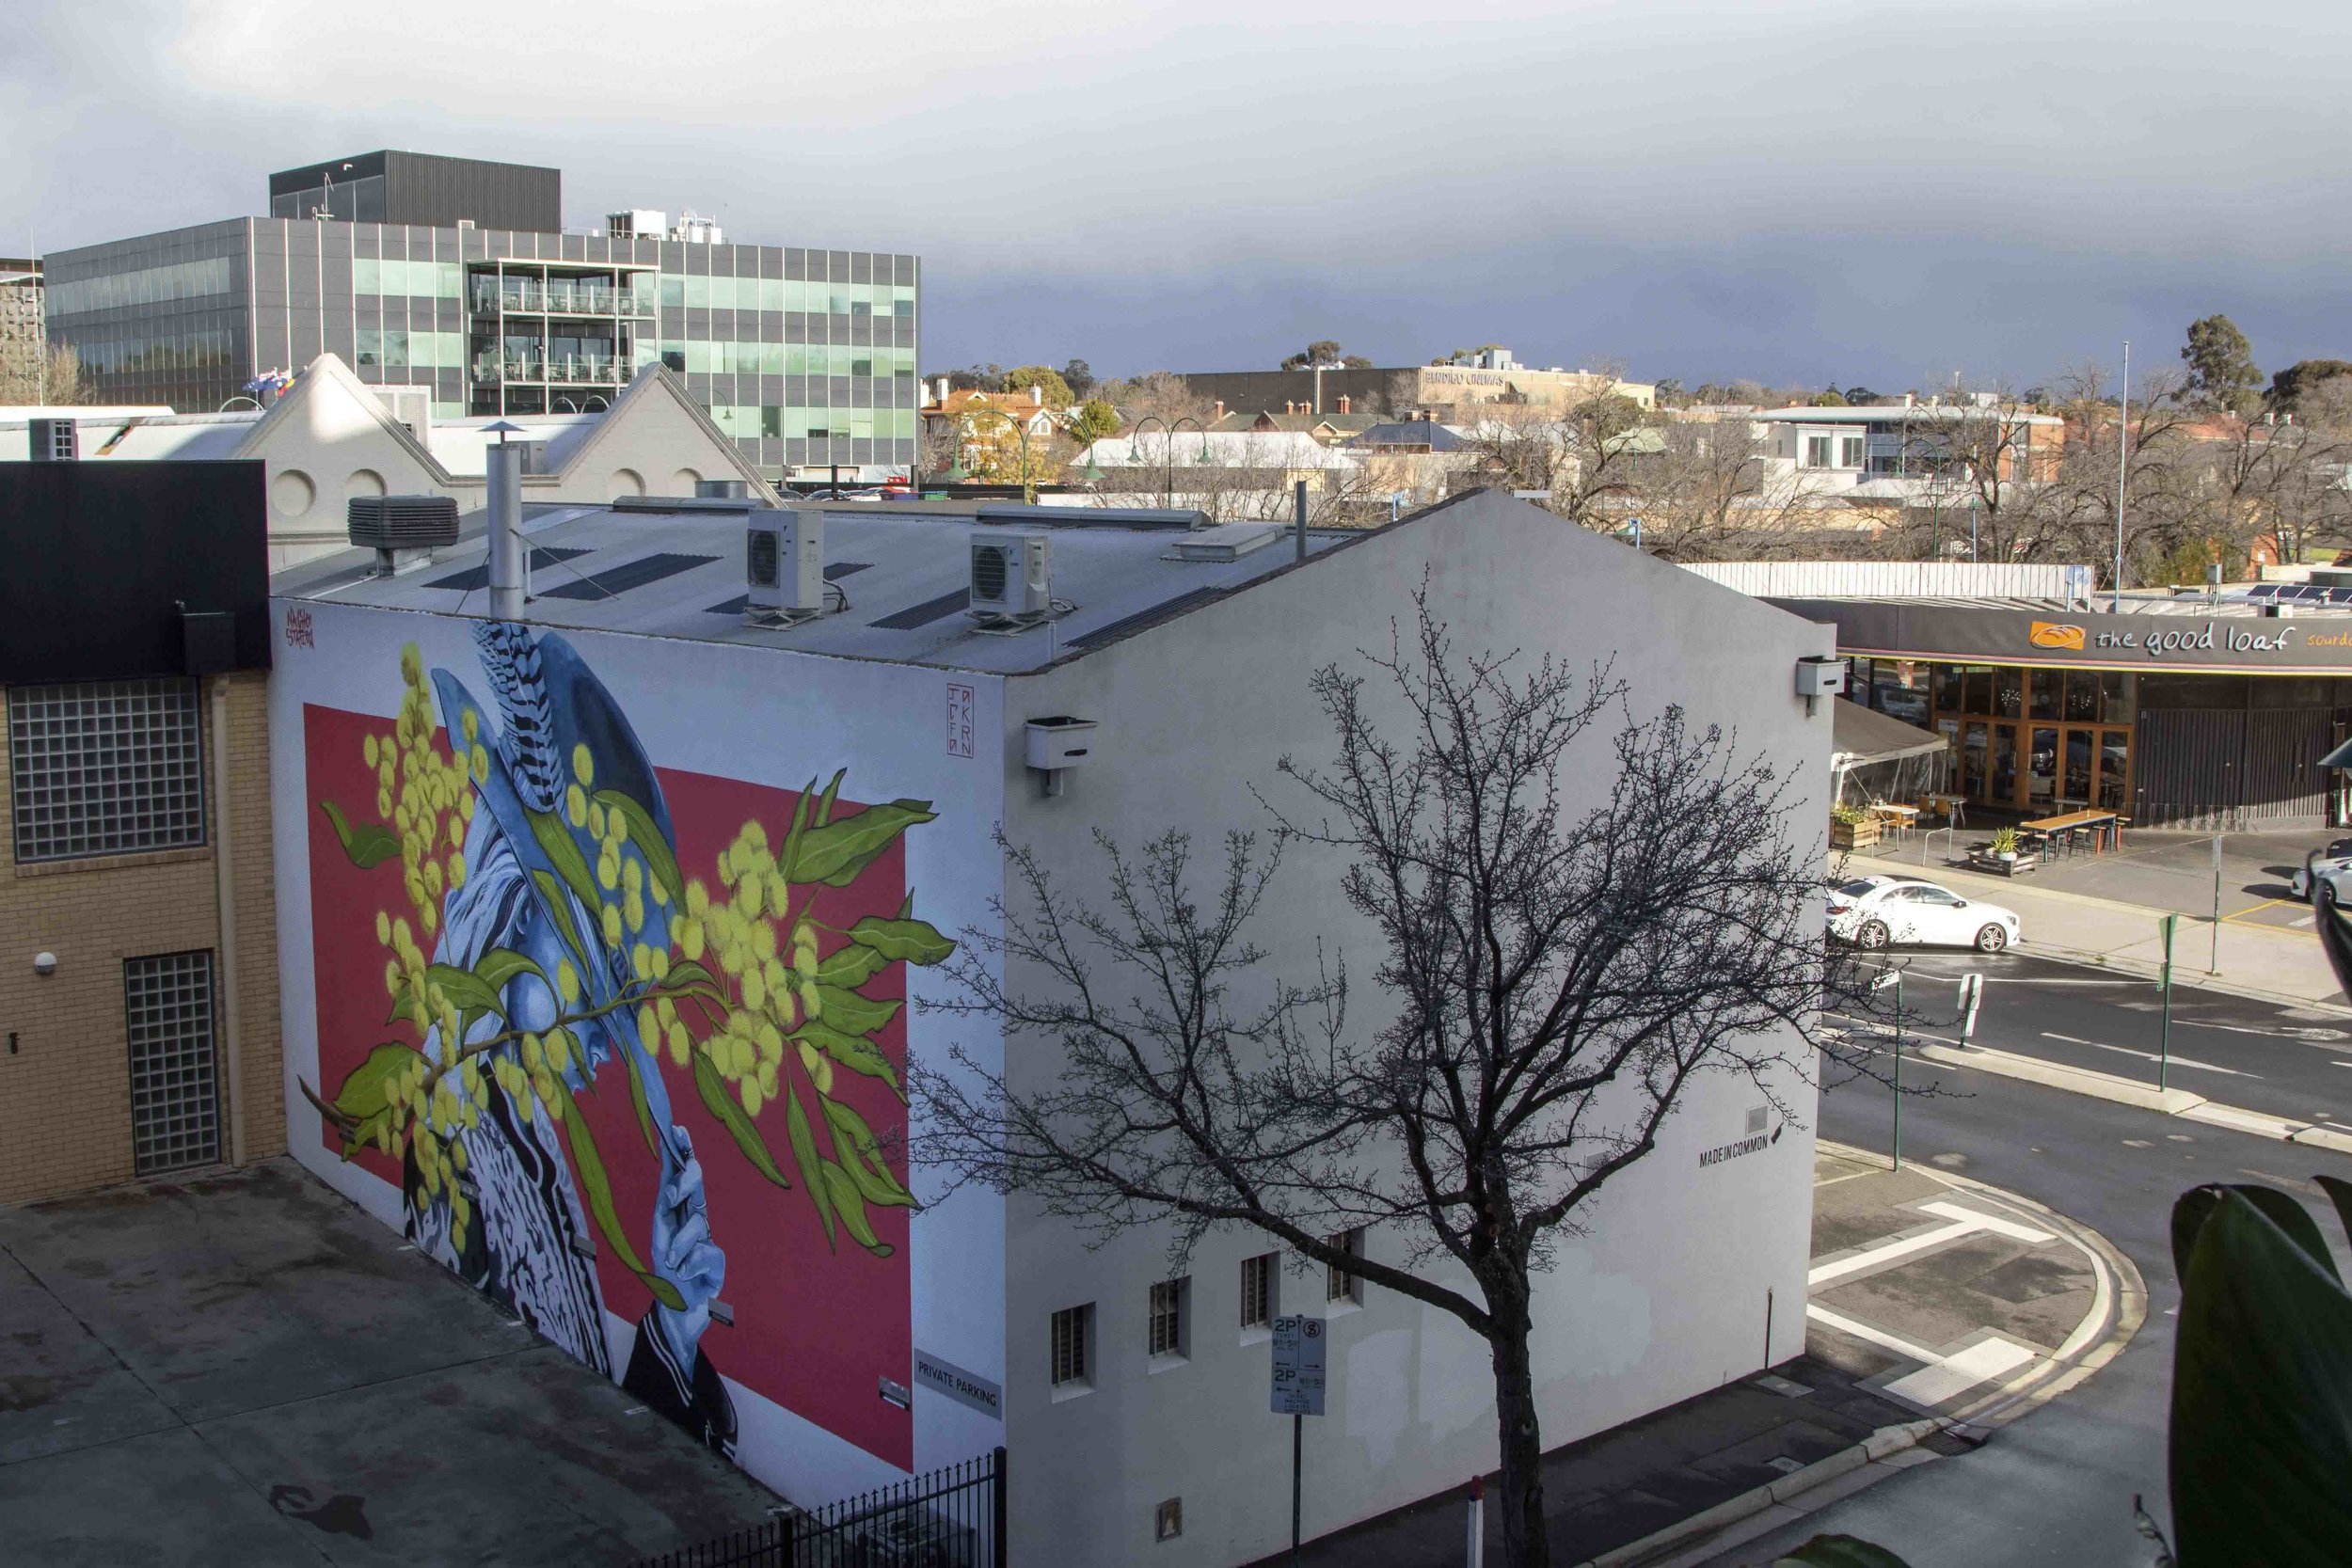 Jack Fran Paints Mural In Bendigo - Day 5-2.jpg